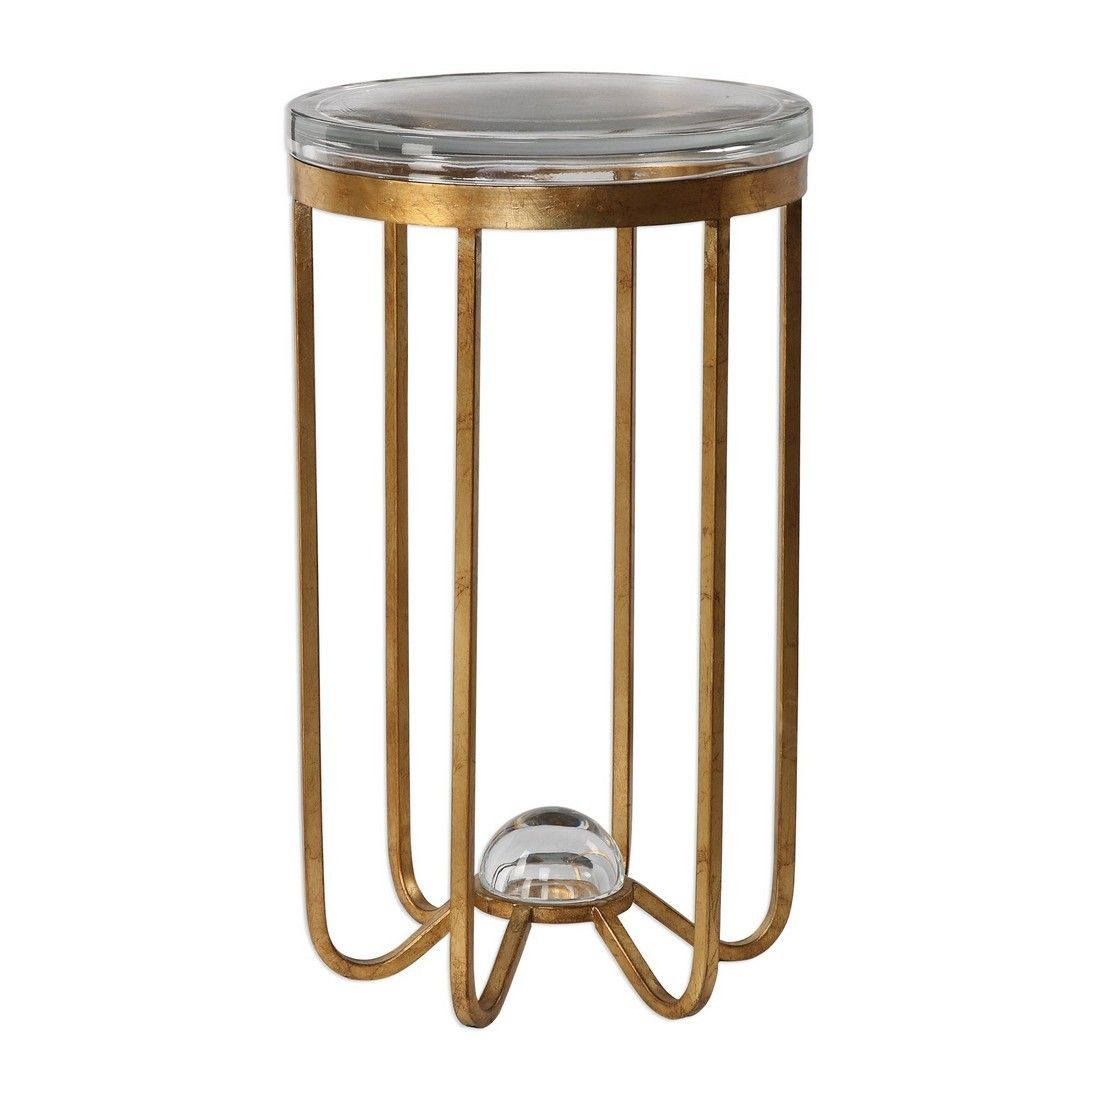 uttermost allura thick round glass accent table antique gold leaf black bedside and iron side french chairs end tables mission style lighting kohls floor lamps outdoor furniture